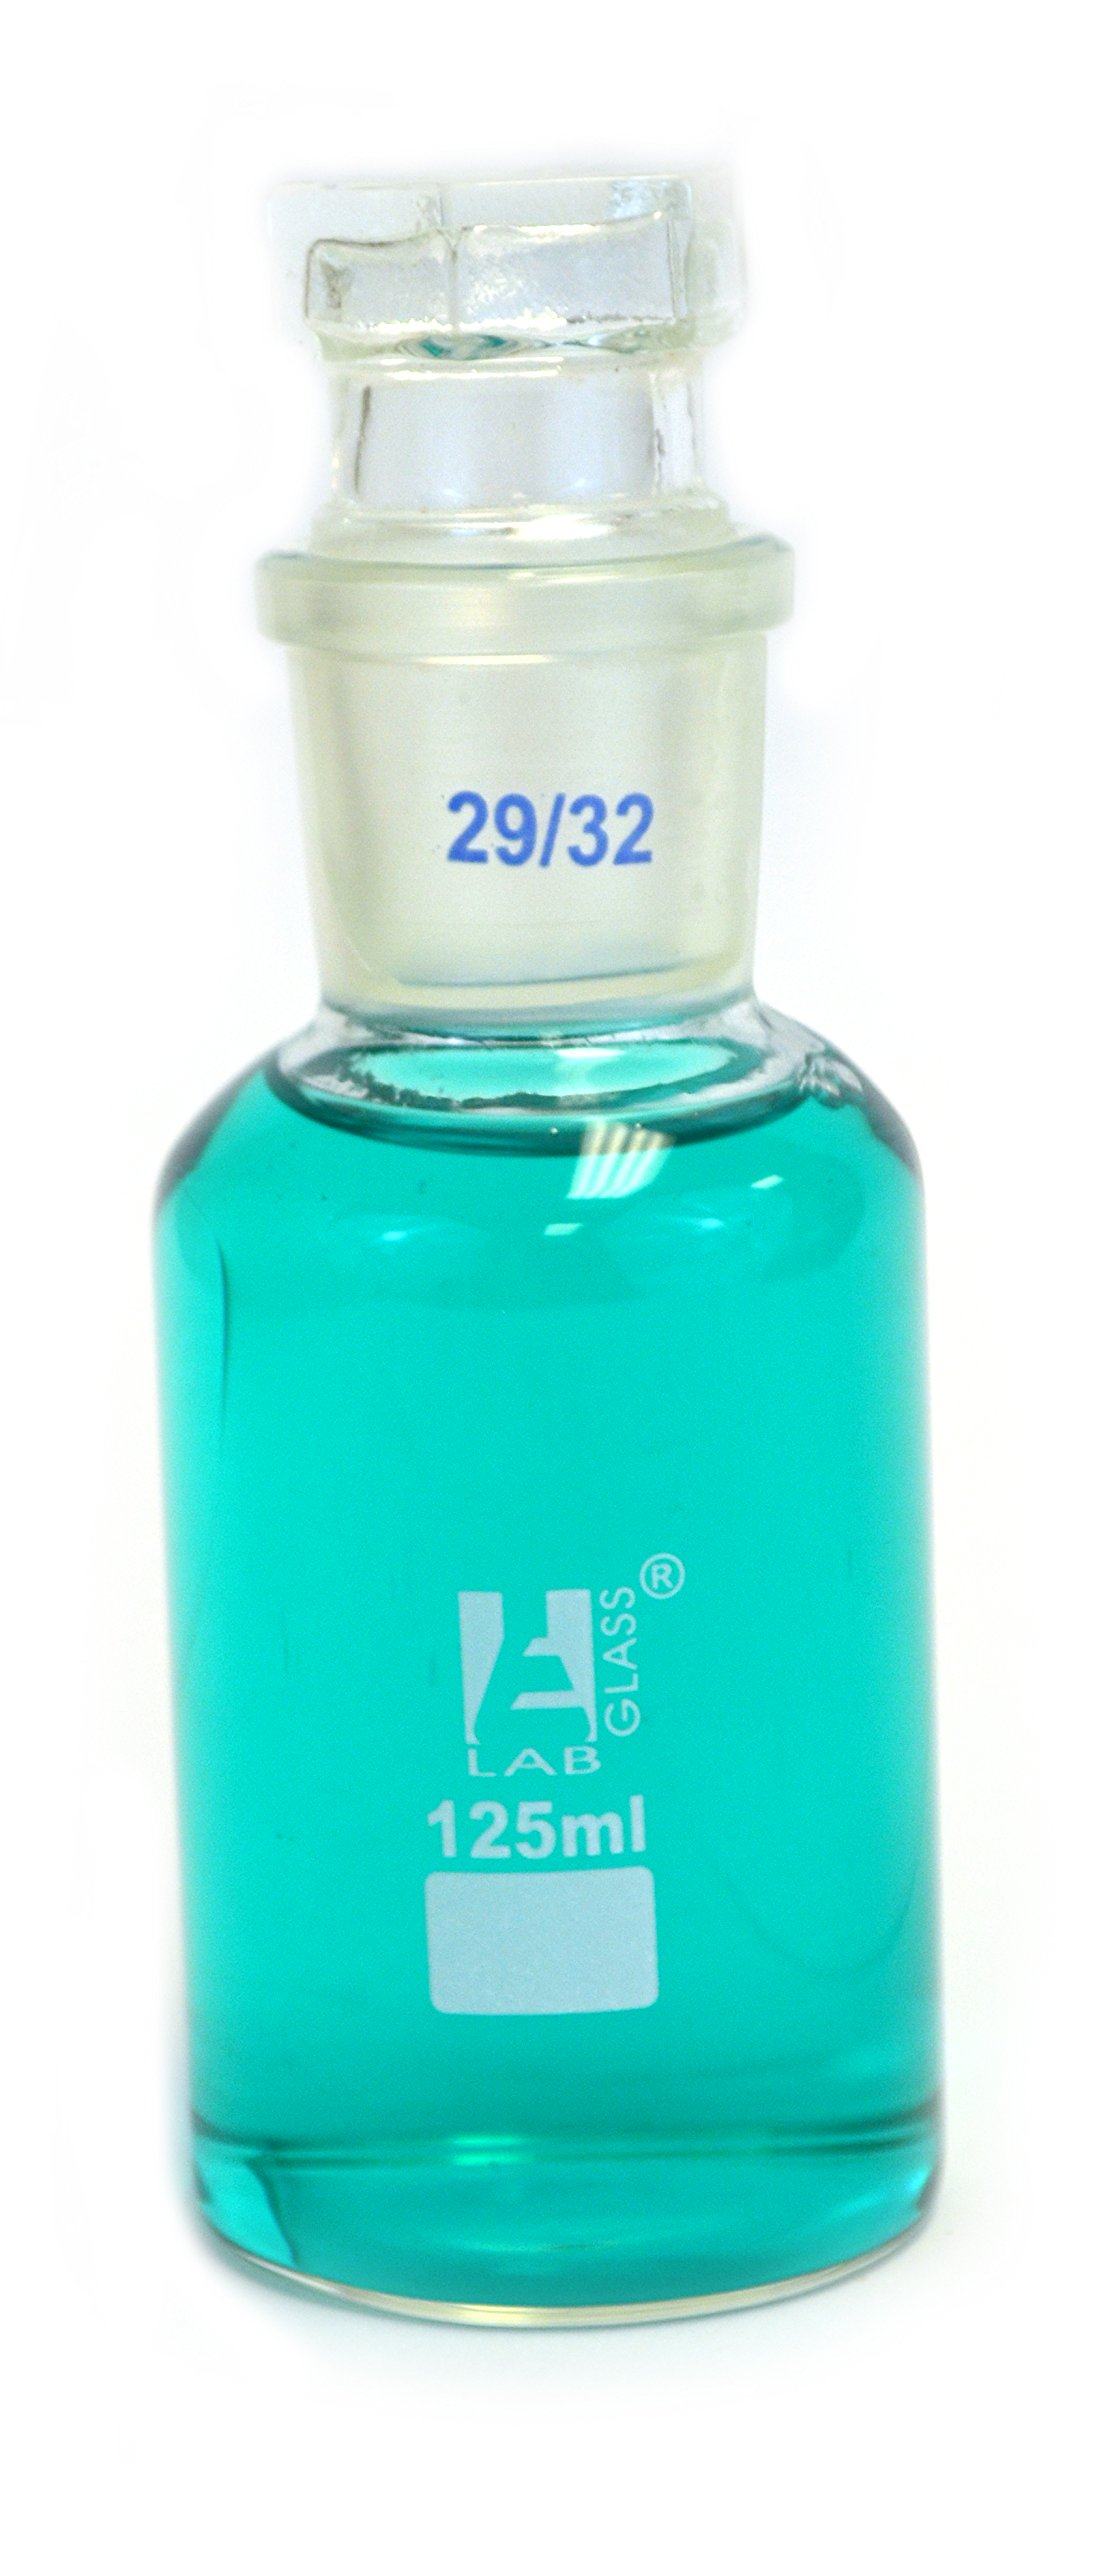 Eisco Labs 125ml Reagent Glass Bottle - Wide Mouth with Stopper by EISCO